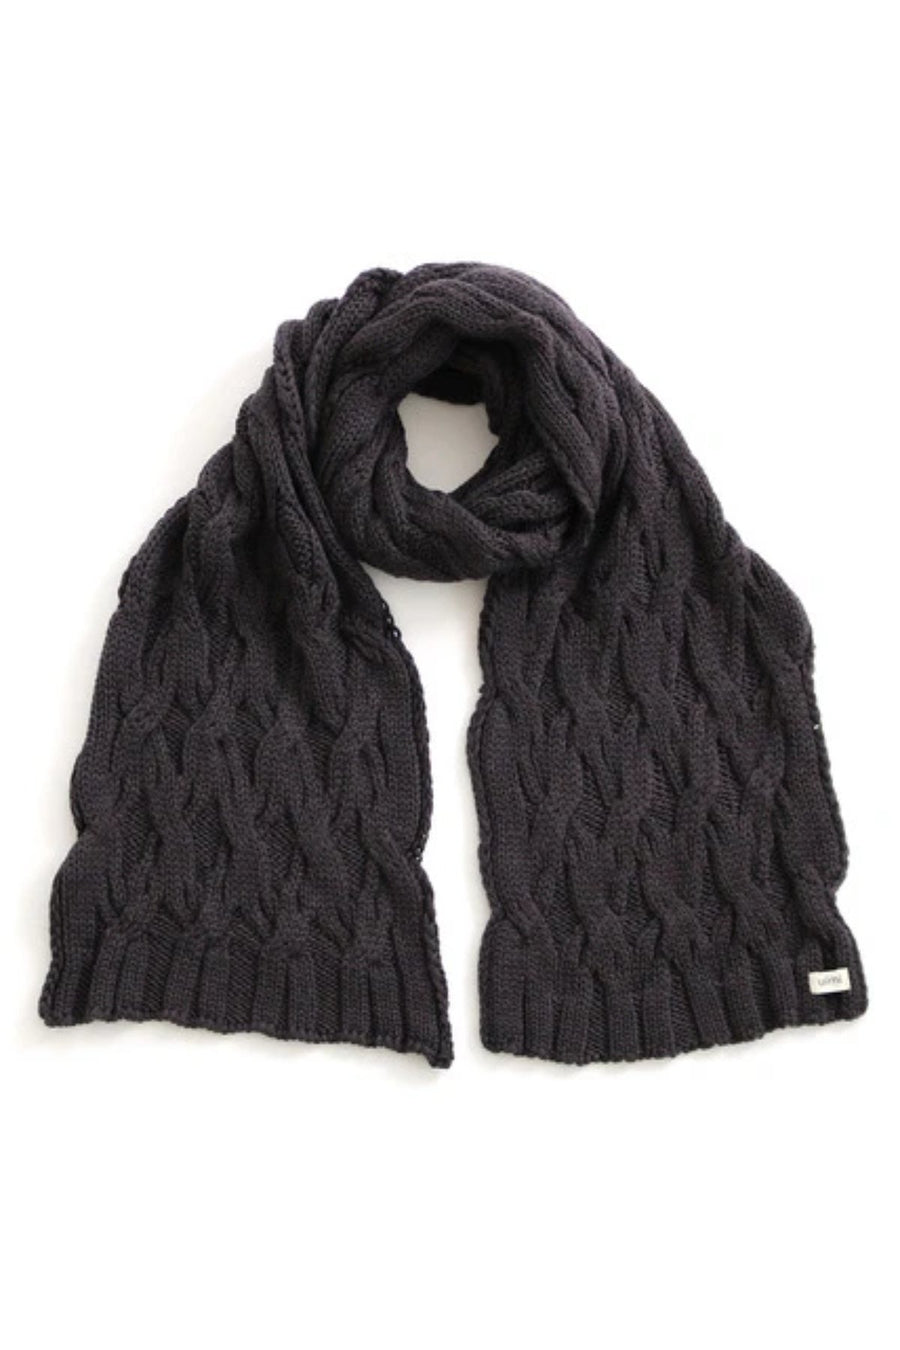 Mabel Scarf - Blackcurrant - Shop Online At Mookah - mookah.com.au